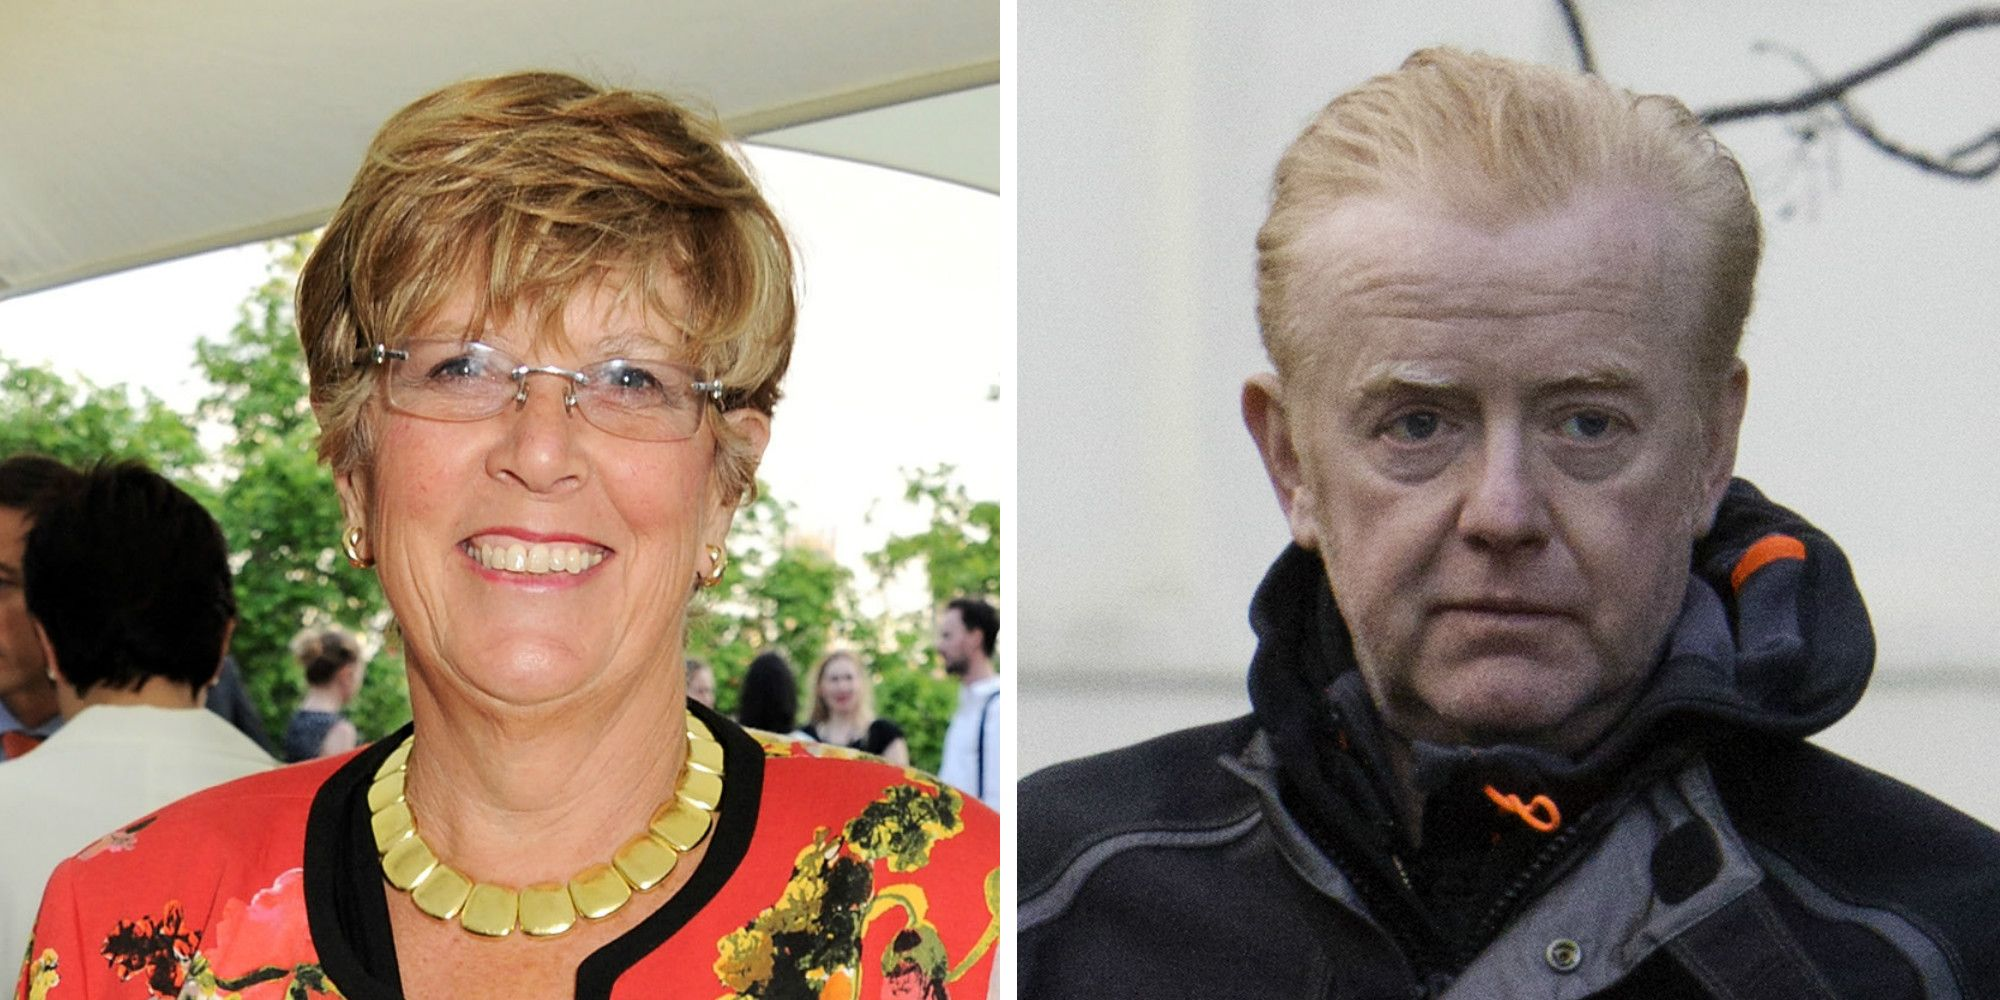 Prue Leith and Chris Evans